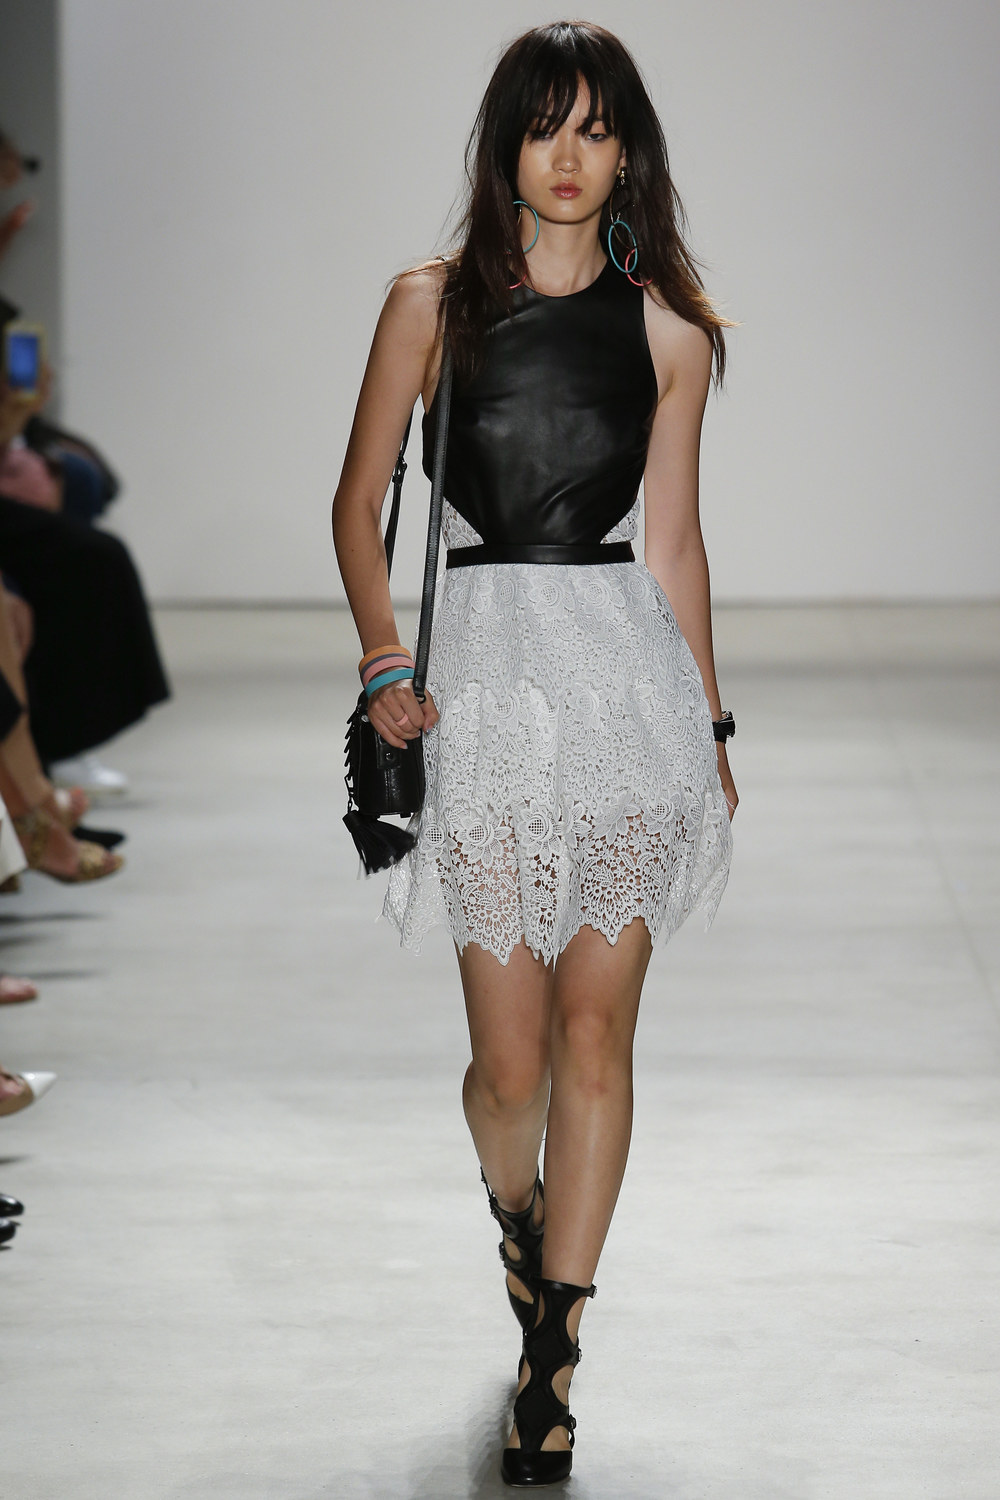 Rebecca Minkoff    The leather and lace contrast is really pretty! This look has both an edgy and feminine vibe to it, which is awesome—it's the best of both worlds. The red lipstick polishes the whole thing off with a bit of glam.